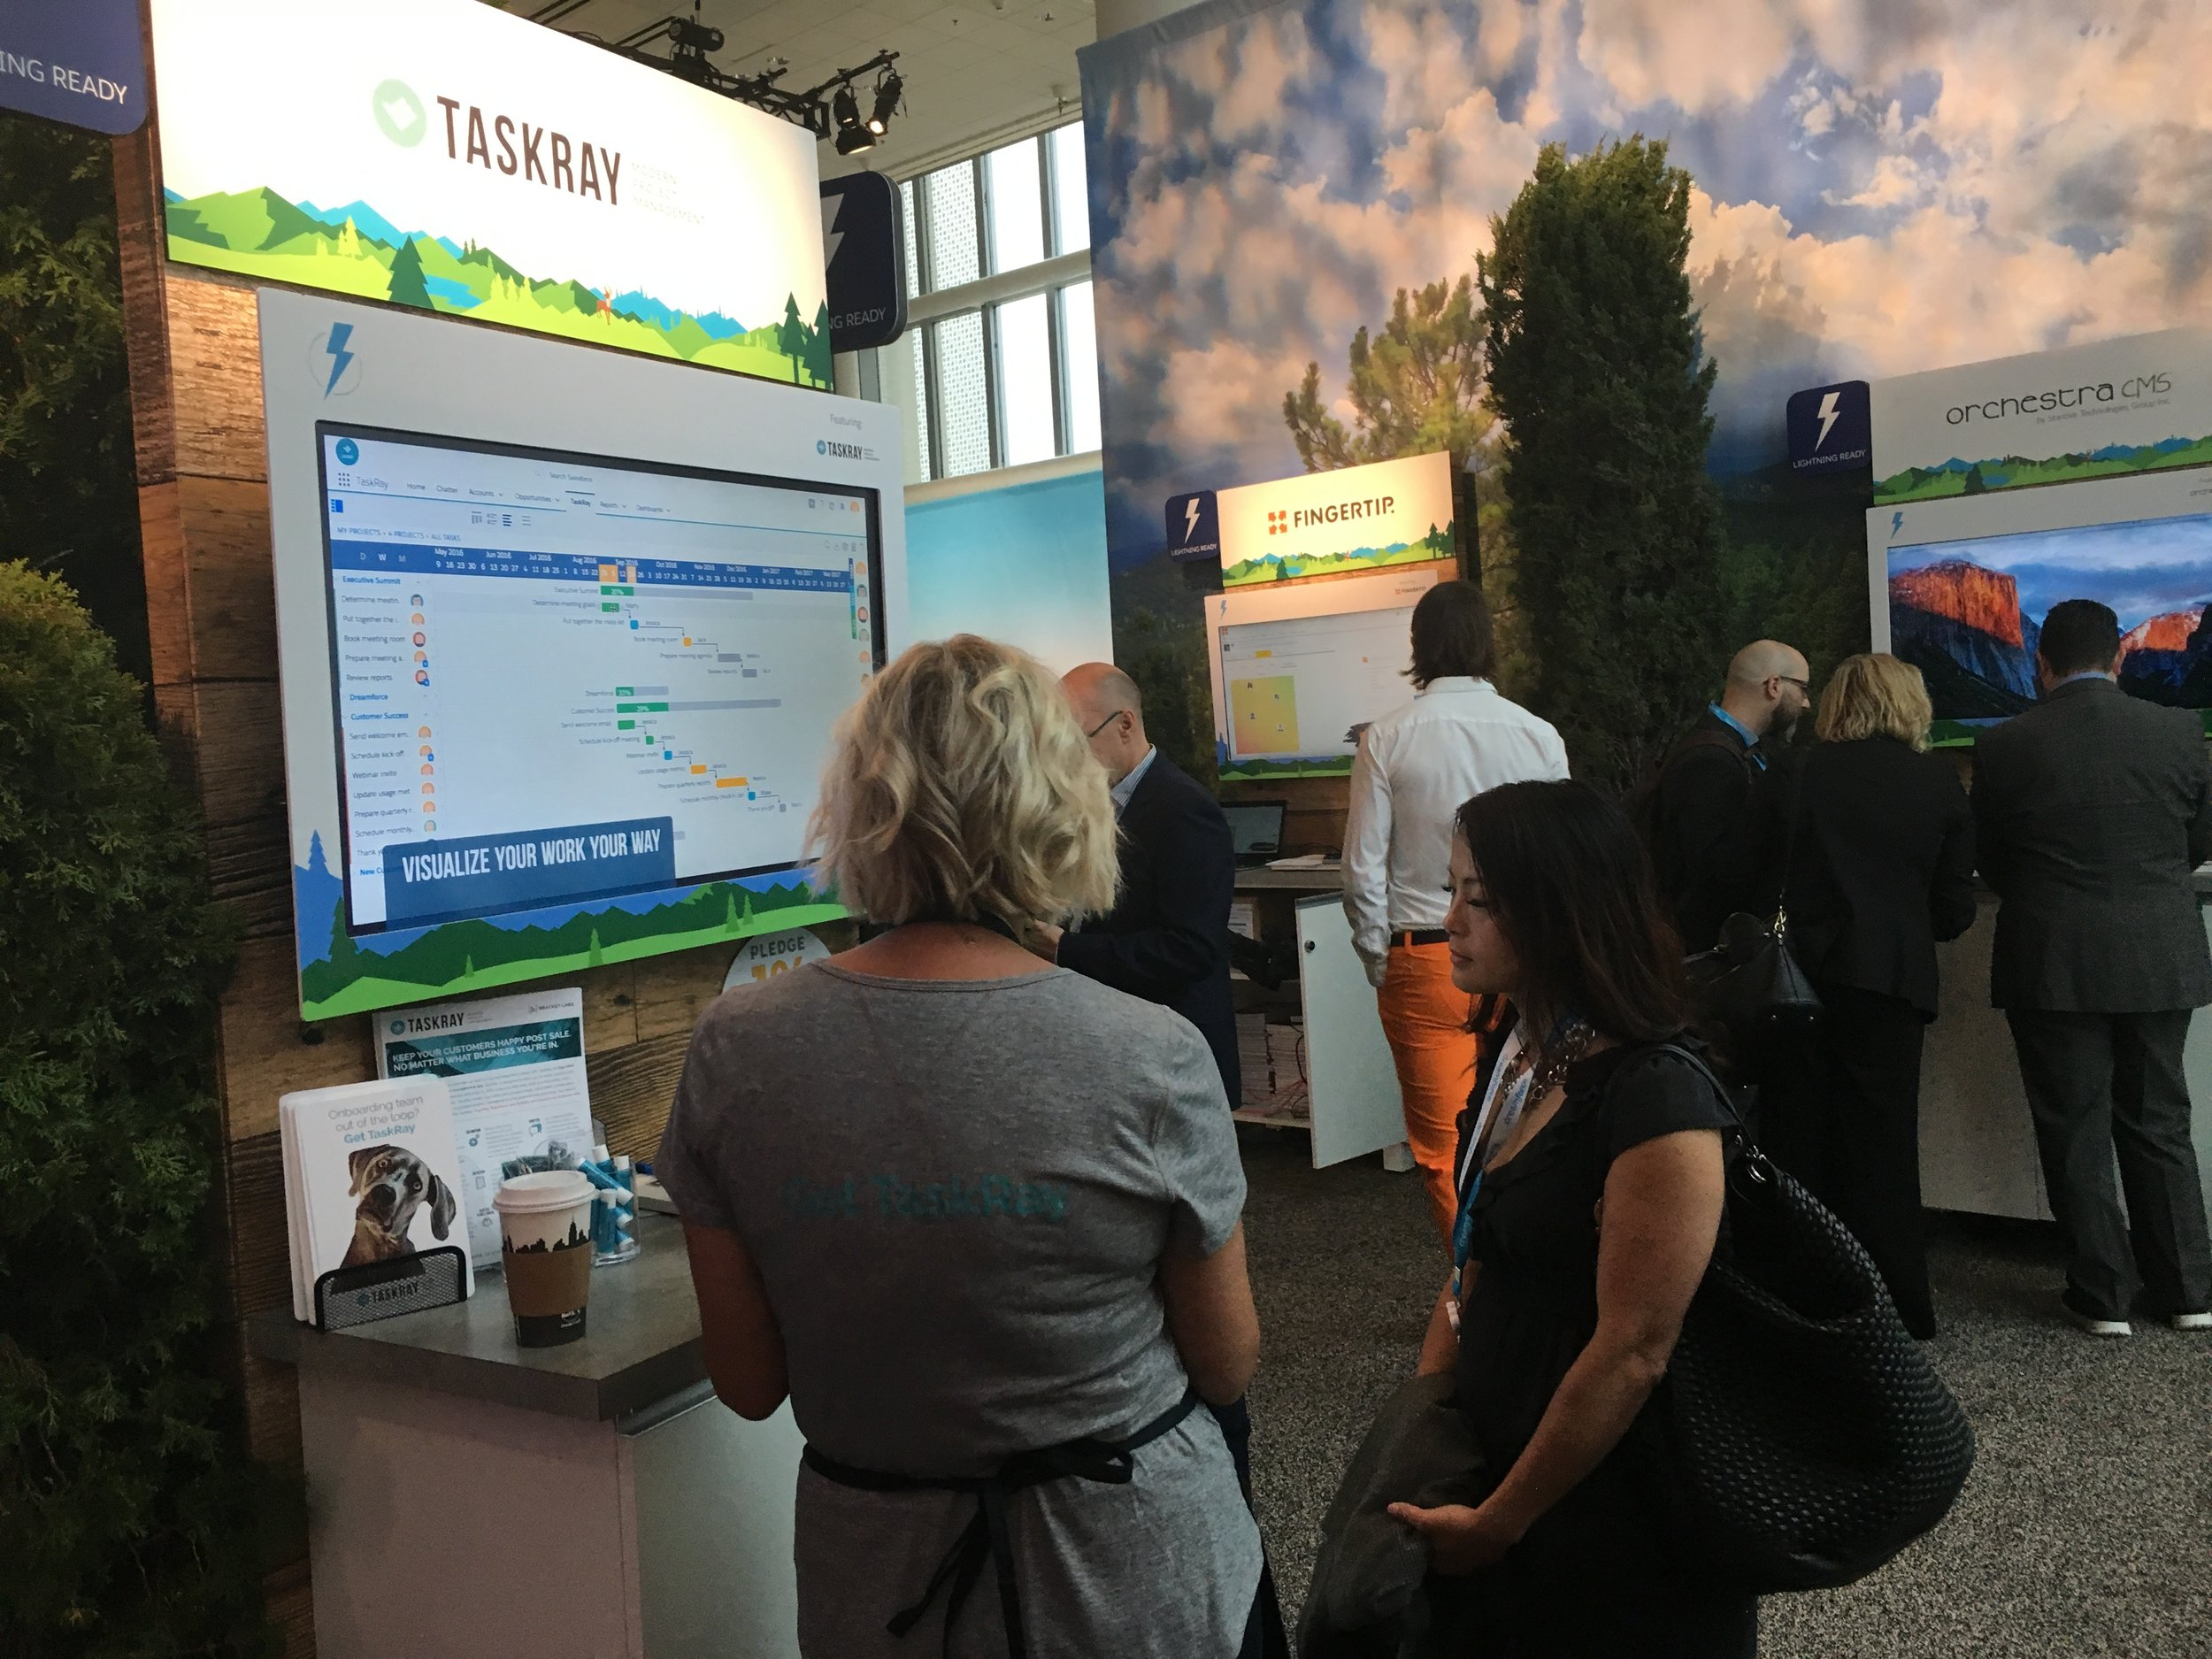 Blakley helping educate a booth visitor about the benefits of TaskRay Lightning Components.